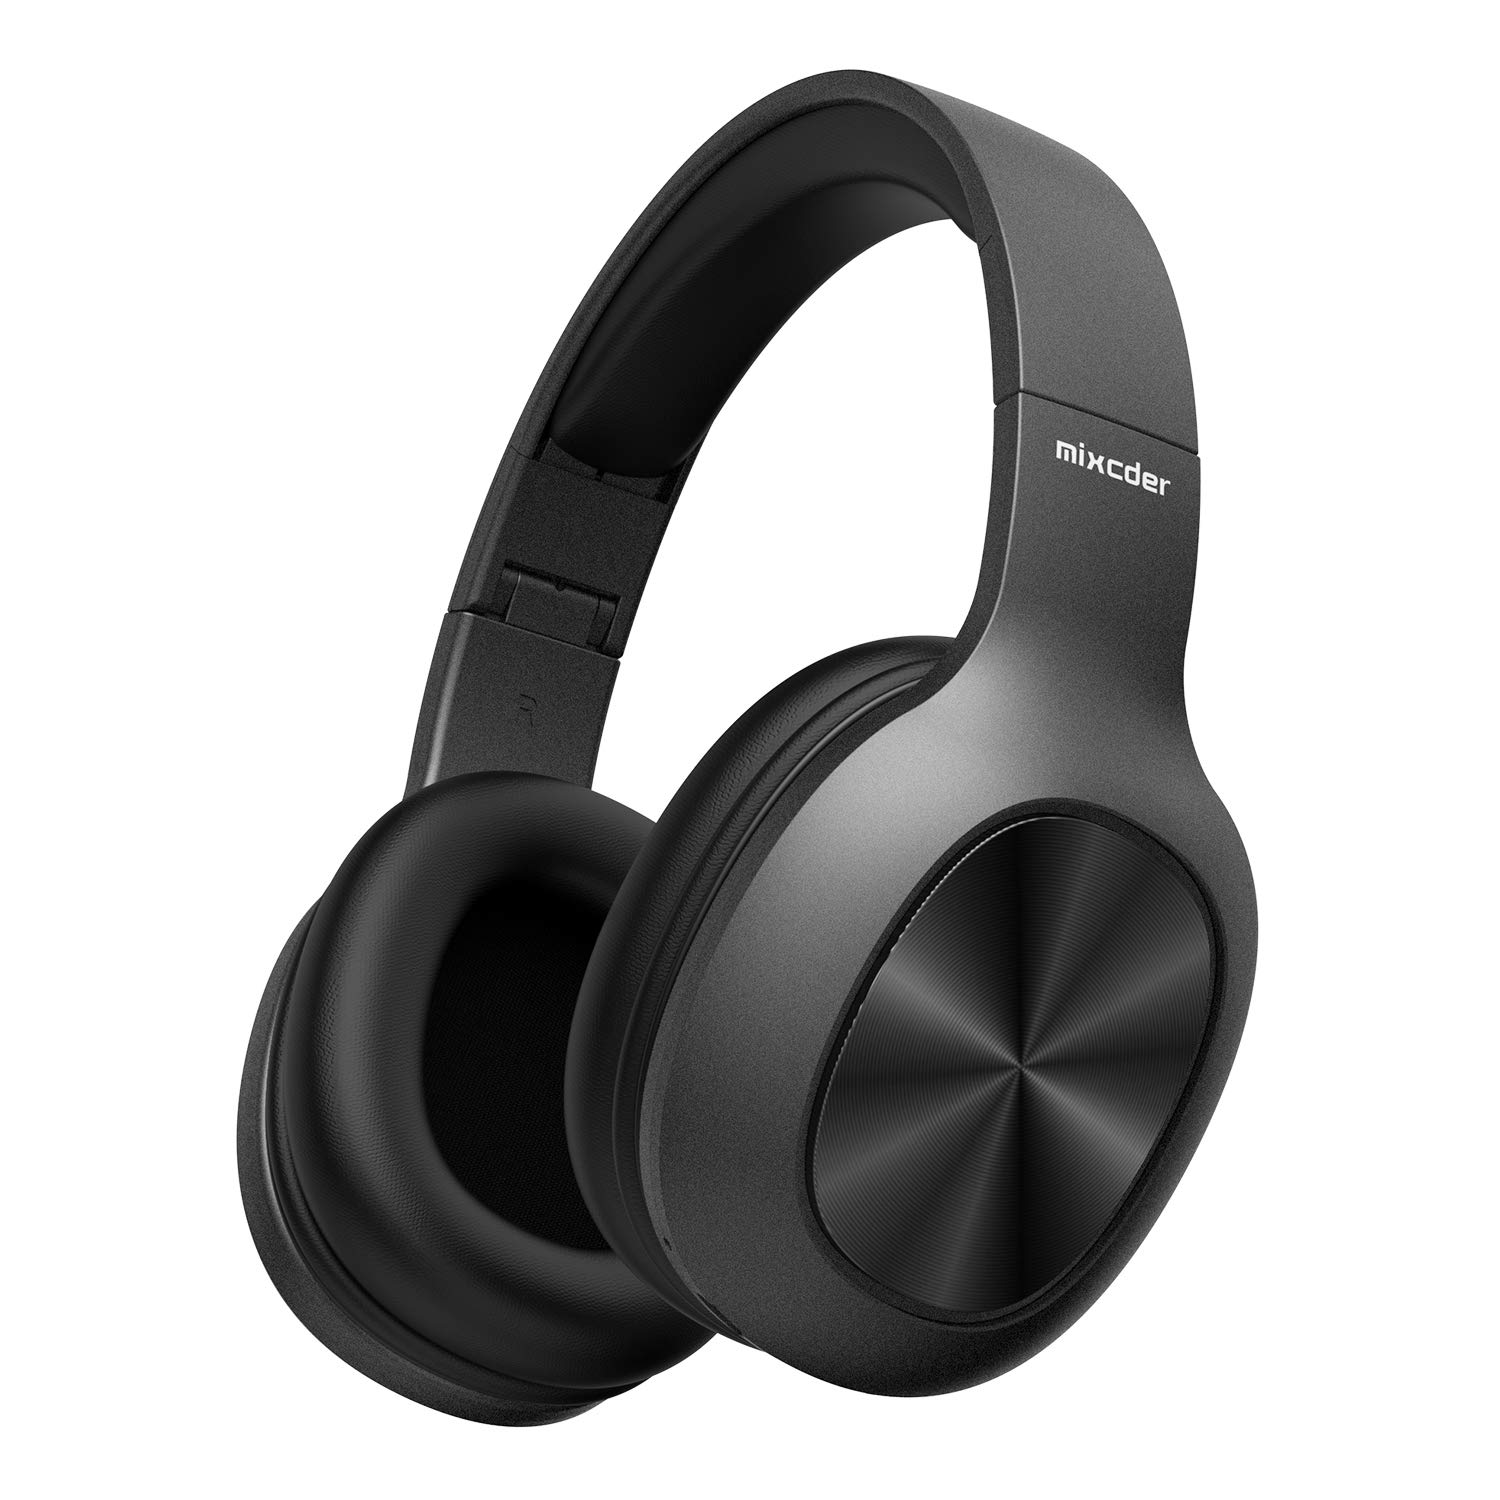 Auriculares Mixcder Hd901 Liviano Inalambrico Hi-fi Stereo Bluetooth Over-ear Con Microfono Confortable Inalambrico Head